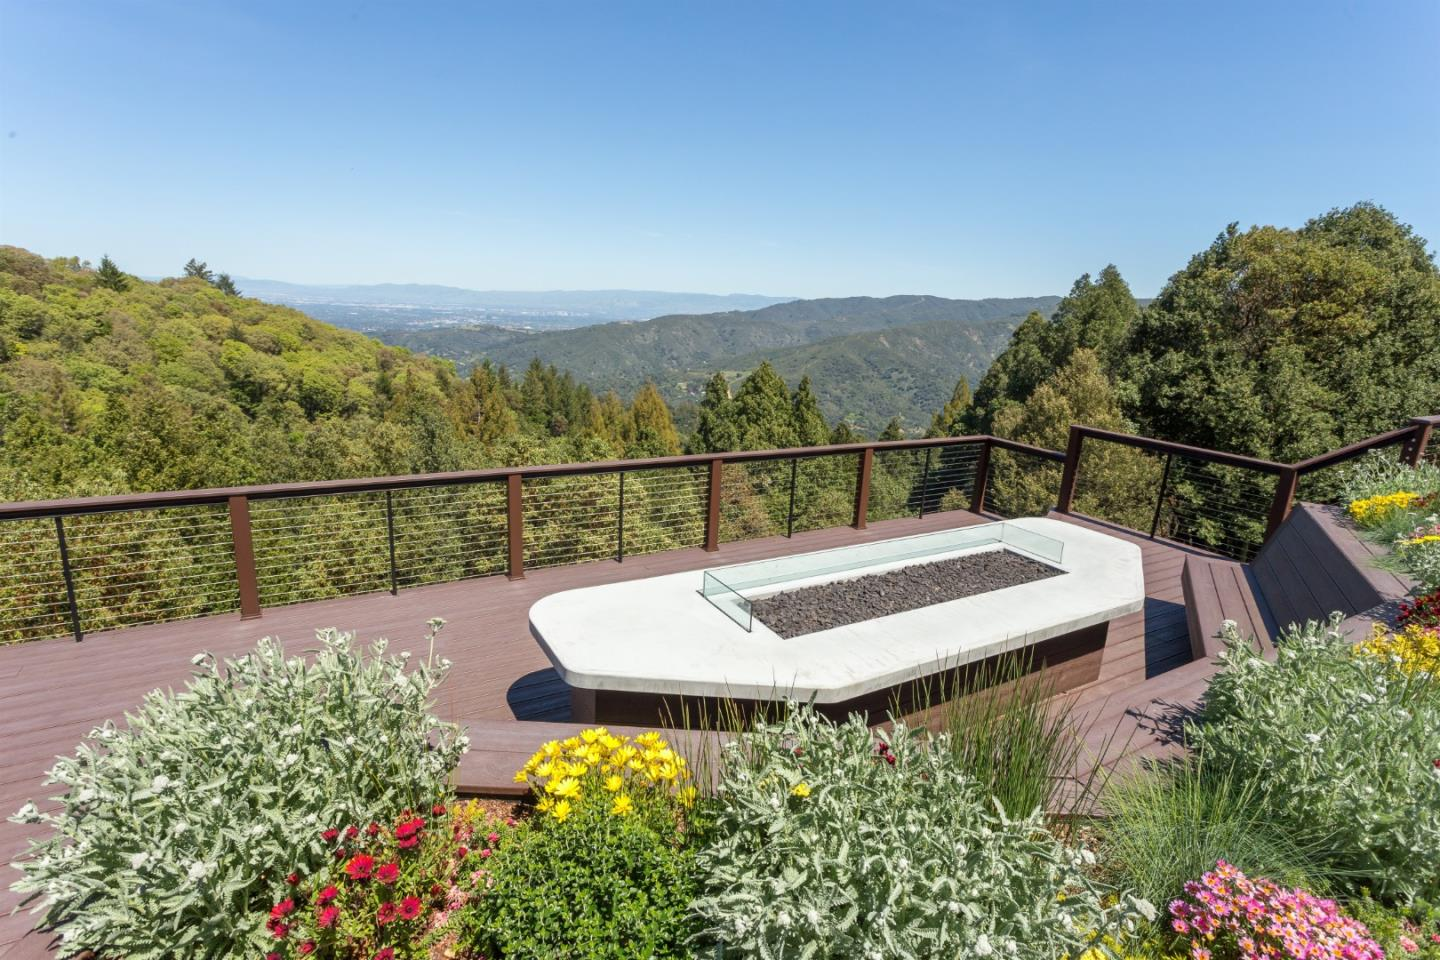 Rare opportunity for a peaceful mountain retreat with close-in location, panoramic views of Los Gatos hills & Silicon Valley! Set back from Summit Rd via a gated circular driveway, on a private knoll top, approx 7.5 acres with bocce ball court, fenced gardens, dry stone walls with stone benches, meandering pathways. Expansive deck with 20' custom gas fire-pit/table, benches, outdoor kitchen, outdoor shower, hot tub & endless pool swim spa. City light views at night. New 4 car garage with 1 bedroom apartment over, approx 780 sq ft with vaulted ceilings, full kitchen, bathroom, laundry, private deck. Main home living room features vaulted ceilings, walls of windows, modern wood panel walls, new wood burning stove and stone surround. Office area with built-in desks/storage, remodeled kitchen, impressive formal dining with prow window. Elevator to lower level media room with full bath, wine cellar, laundry room. Convenient location near 17/Summit, minutes to downtown LG. Los Gatos Schools!